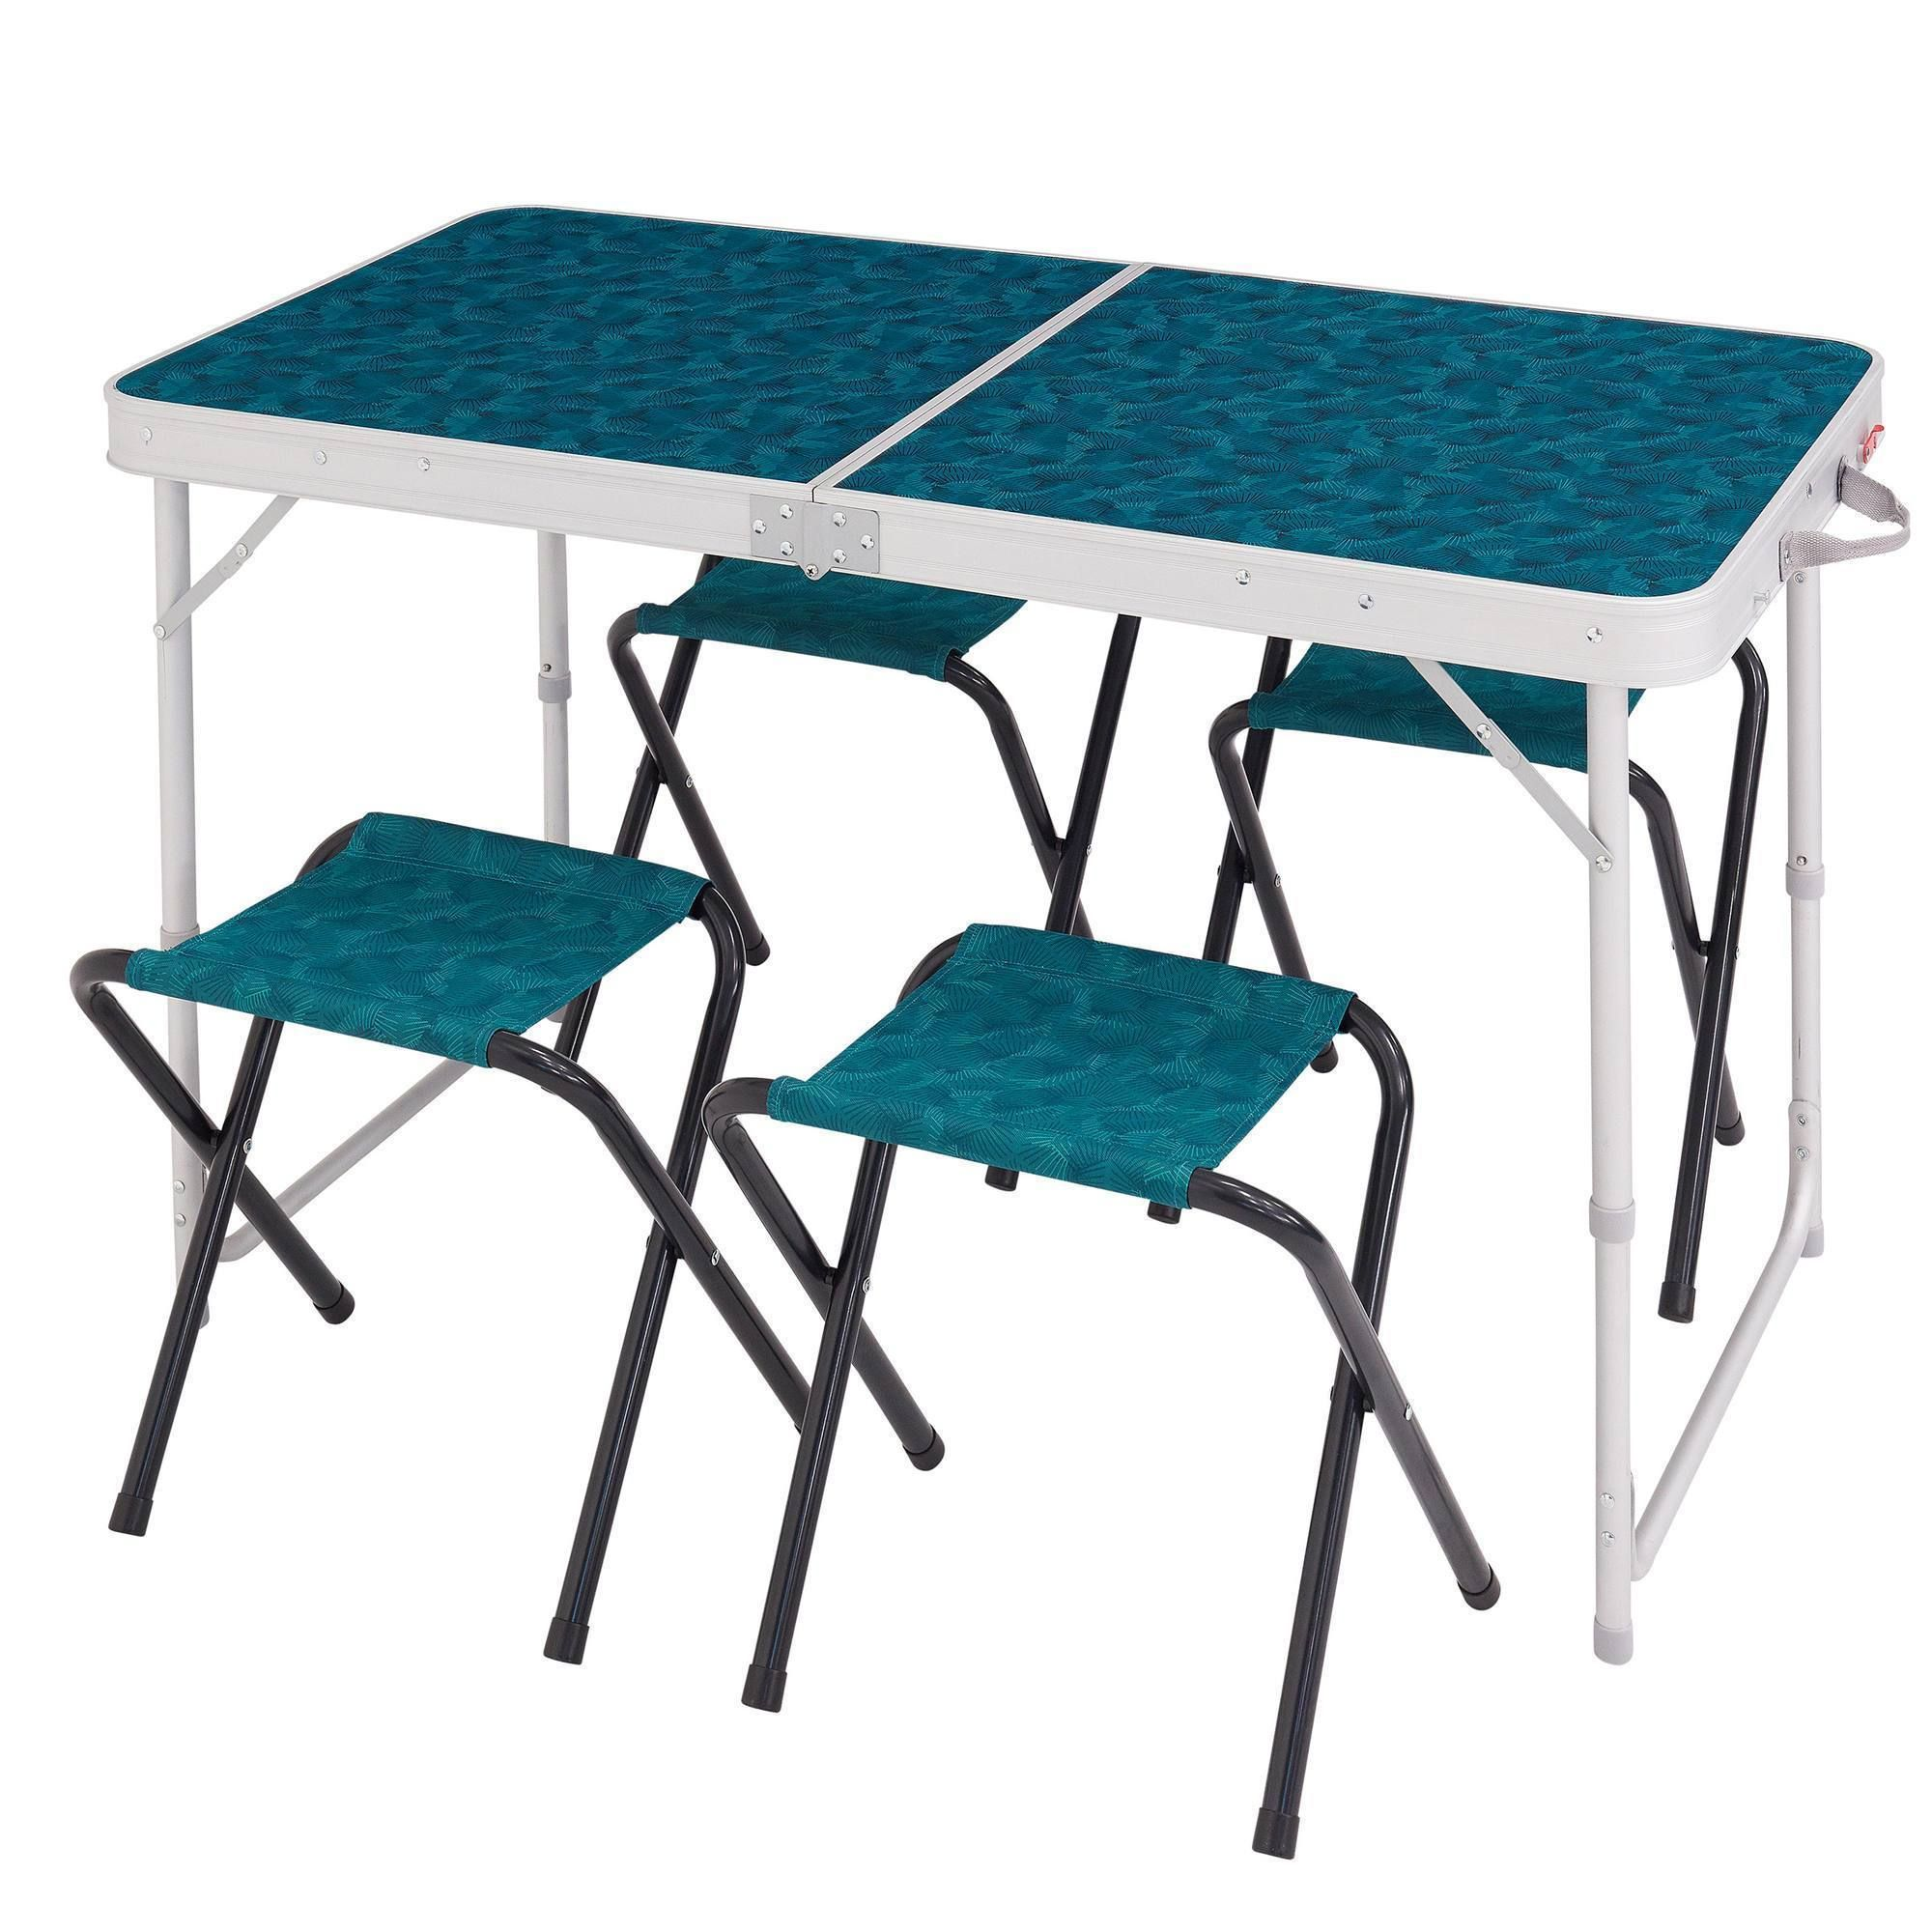 Camping Folding Table With 4 Stools Camping Table Folding Table Folding Camping Table